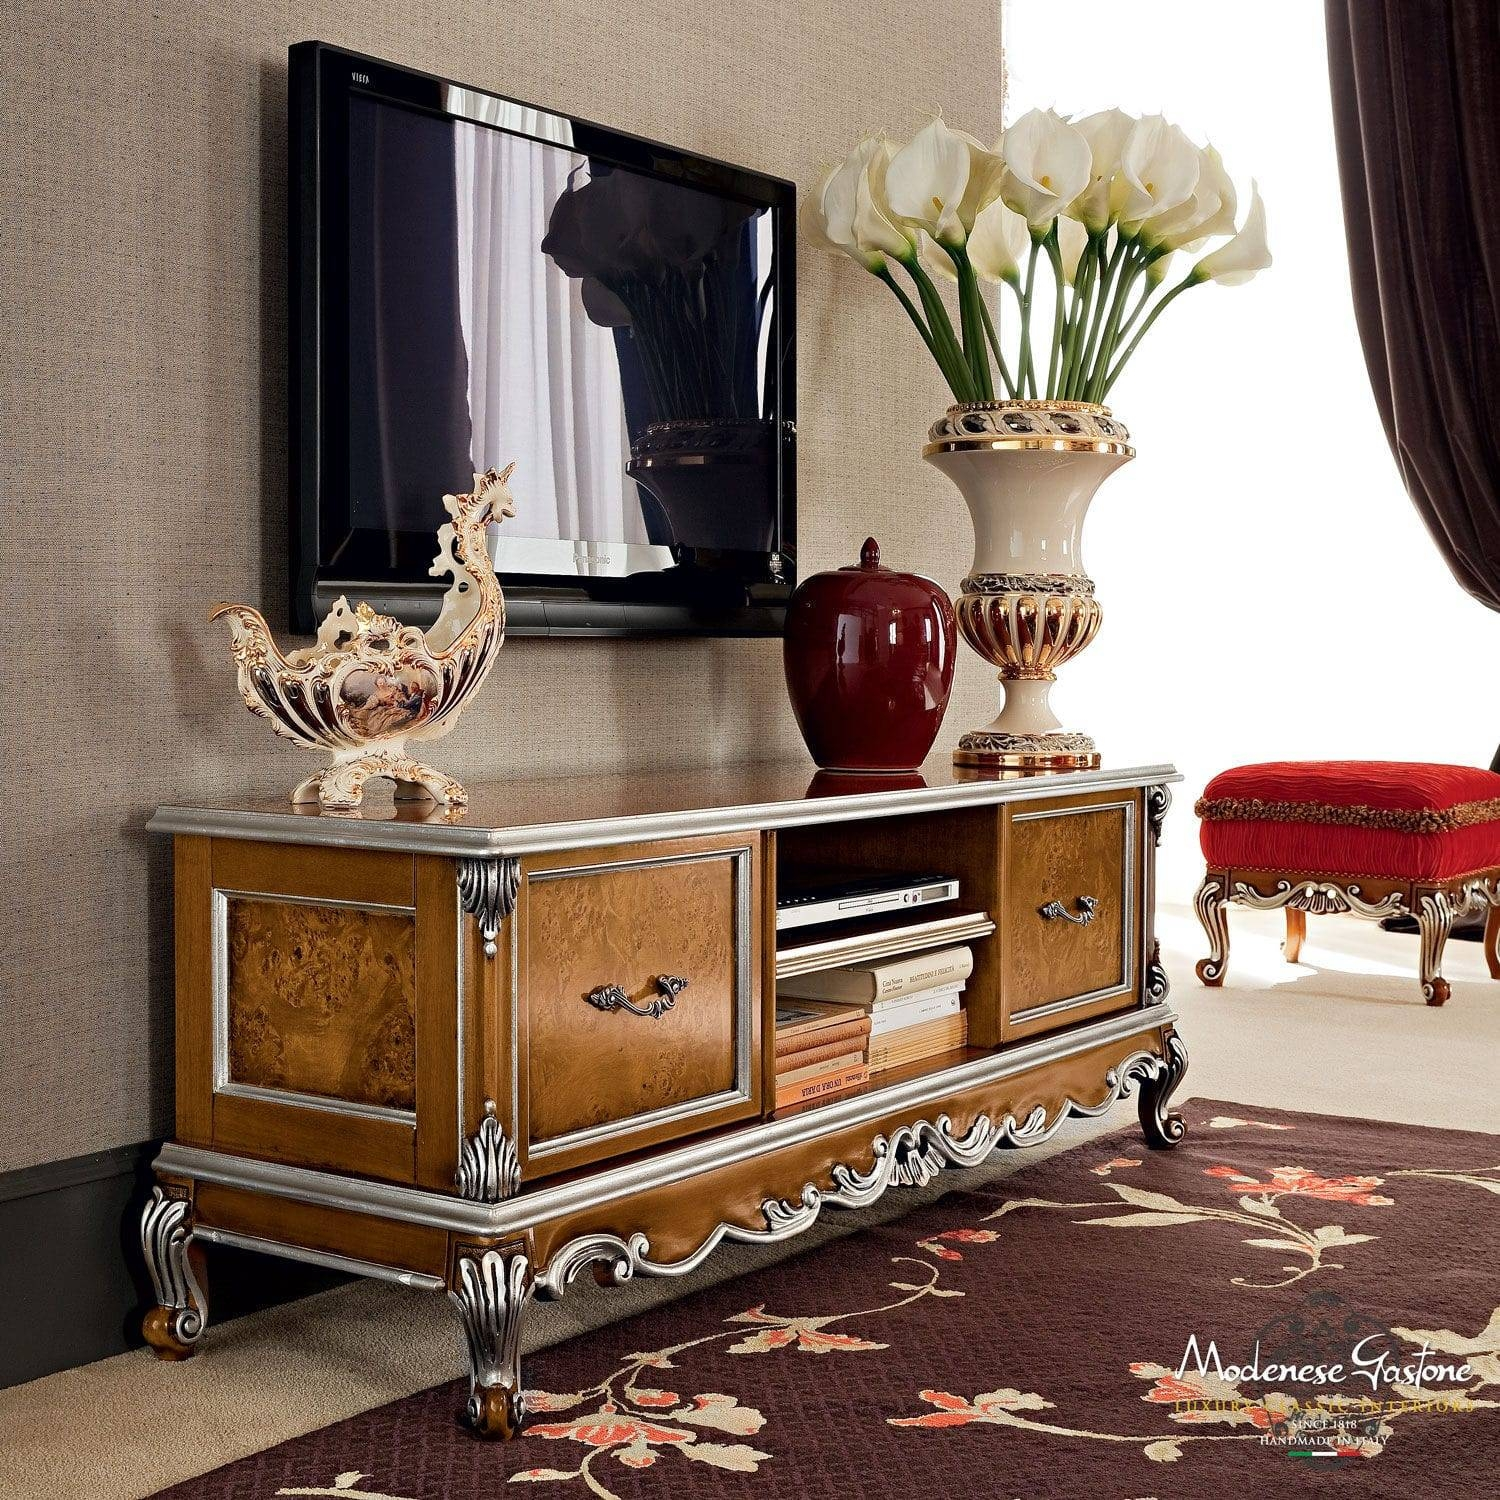 Classic Tv Cabinet / Wooden - Casanova - Modenese Gastone Luxury inside Classic Tv Stands (Image 3 of 15)